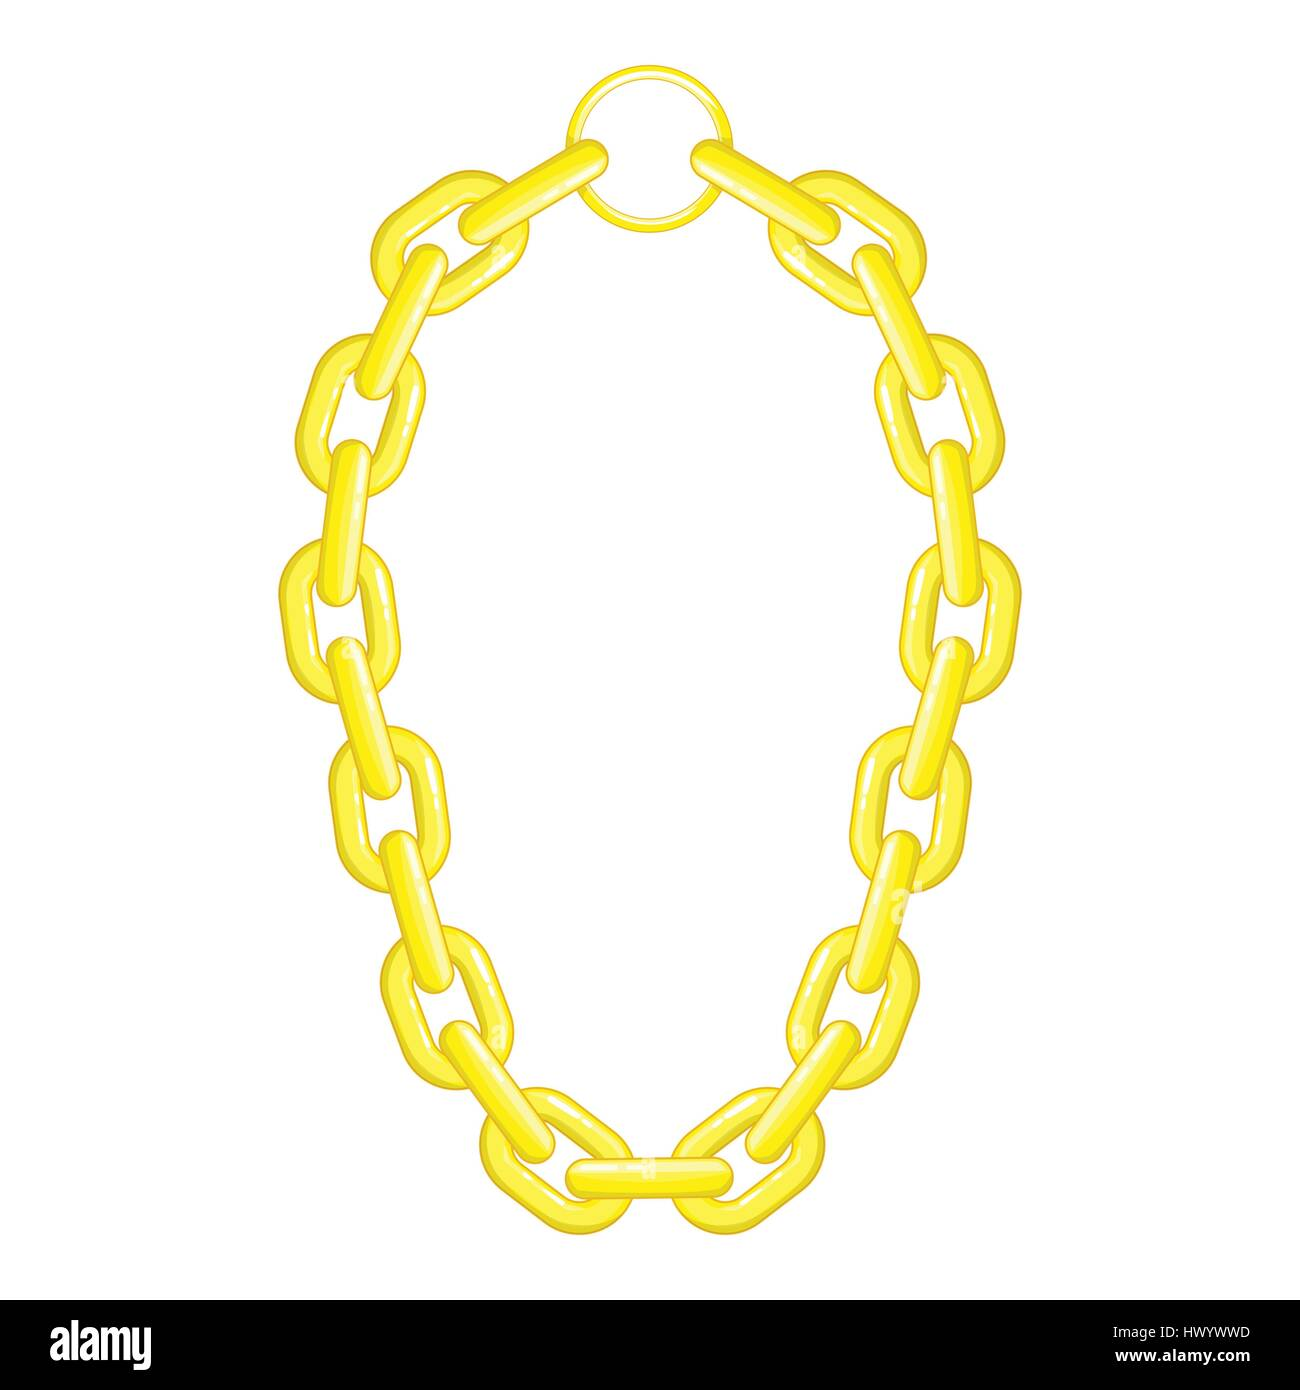 Necklace Chain Vector